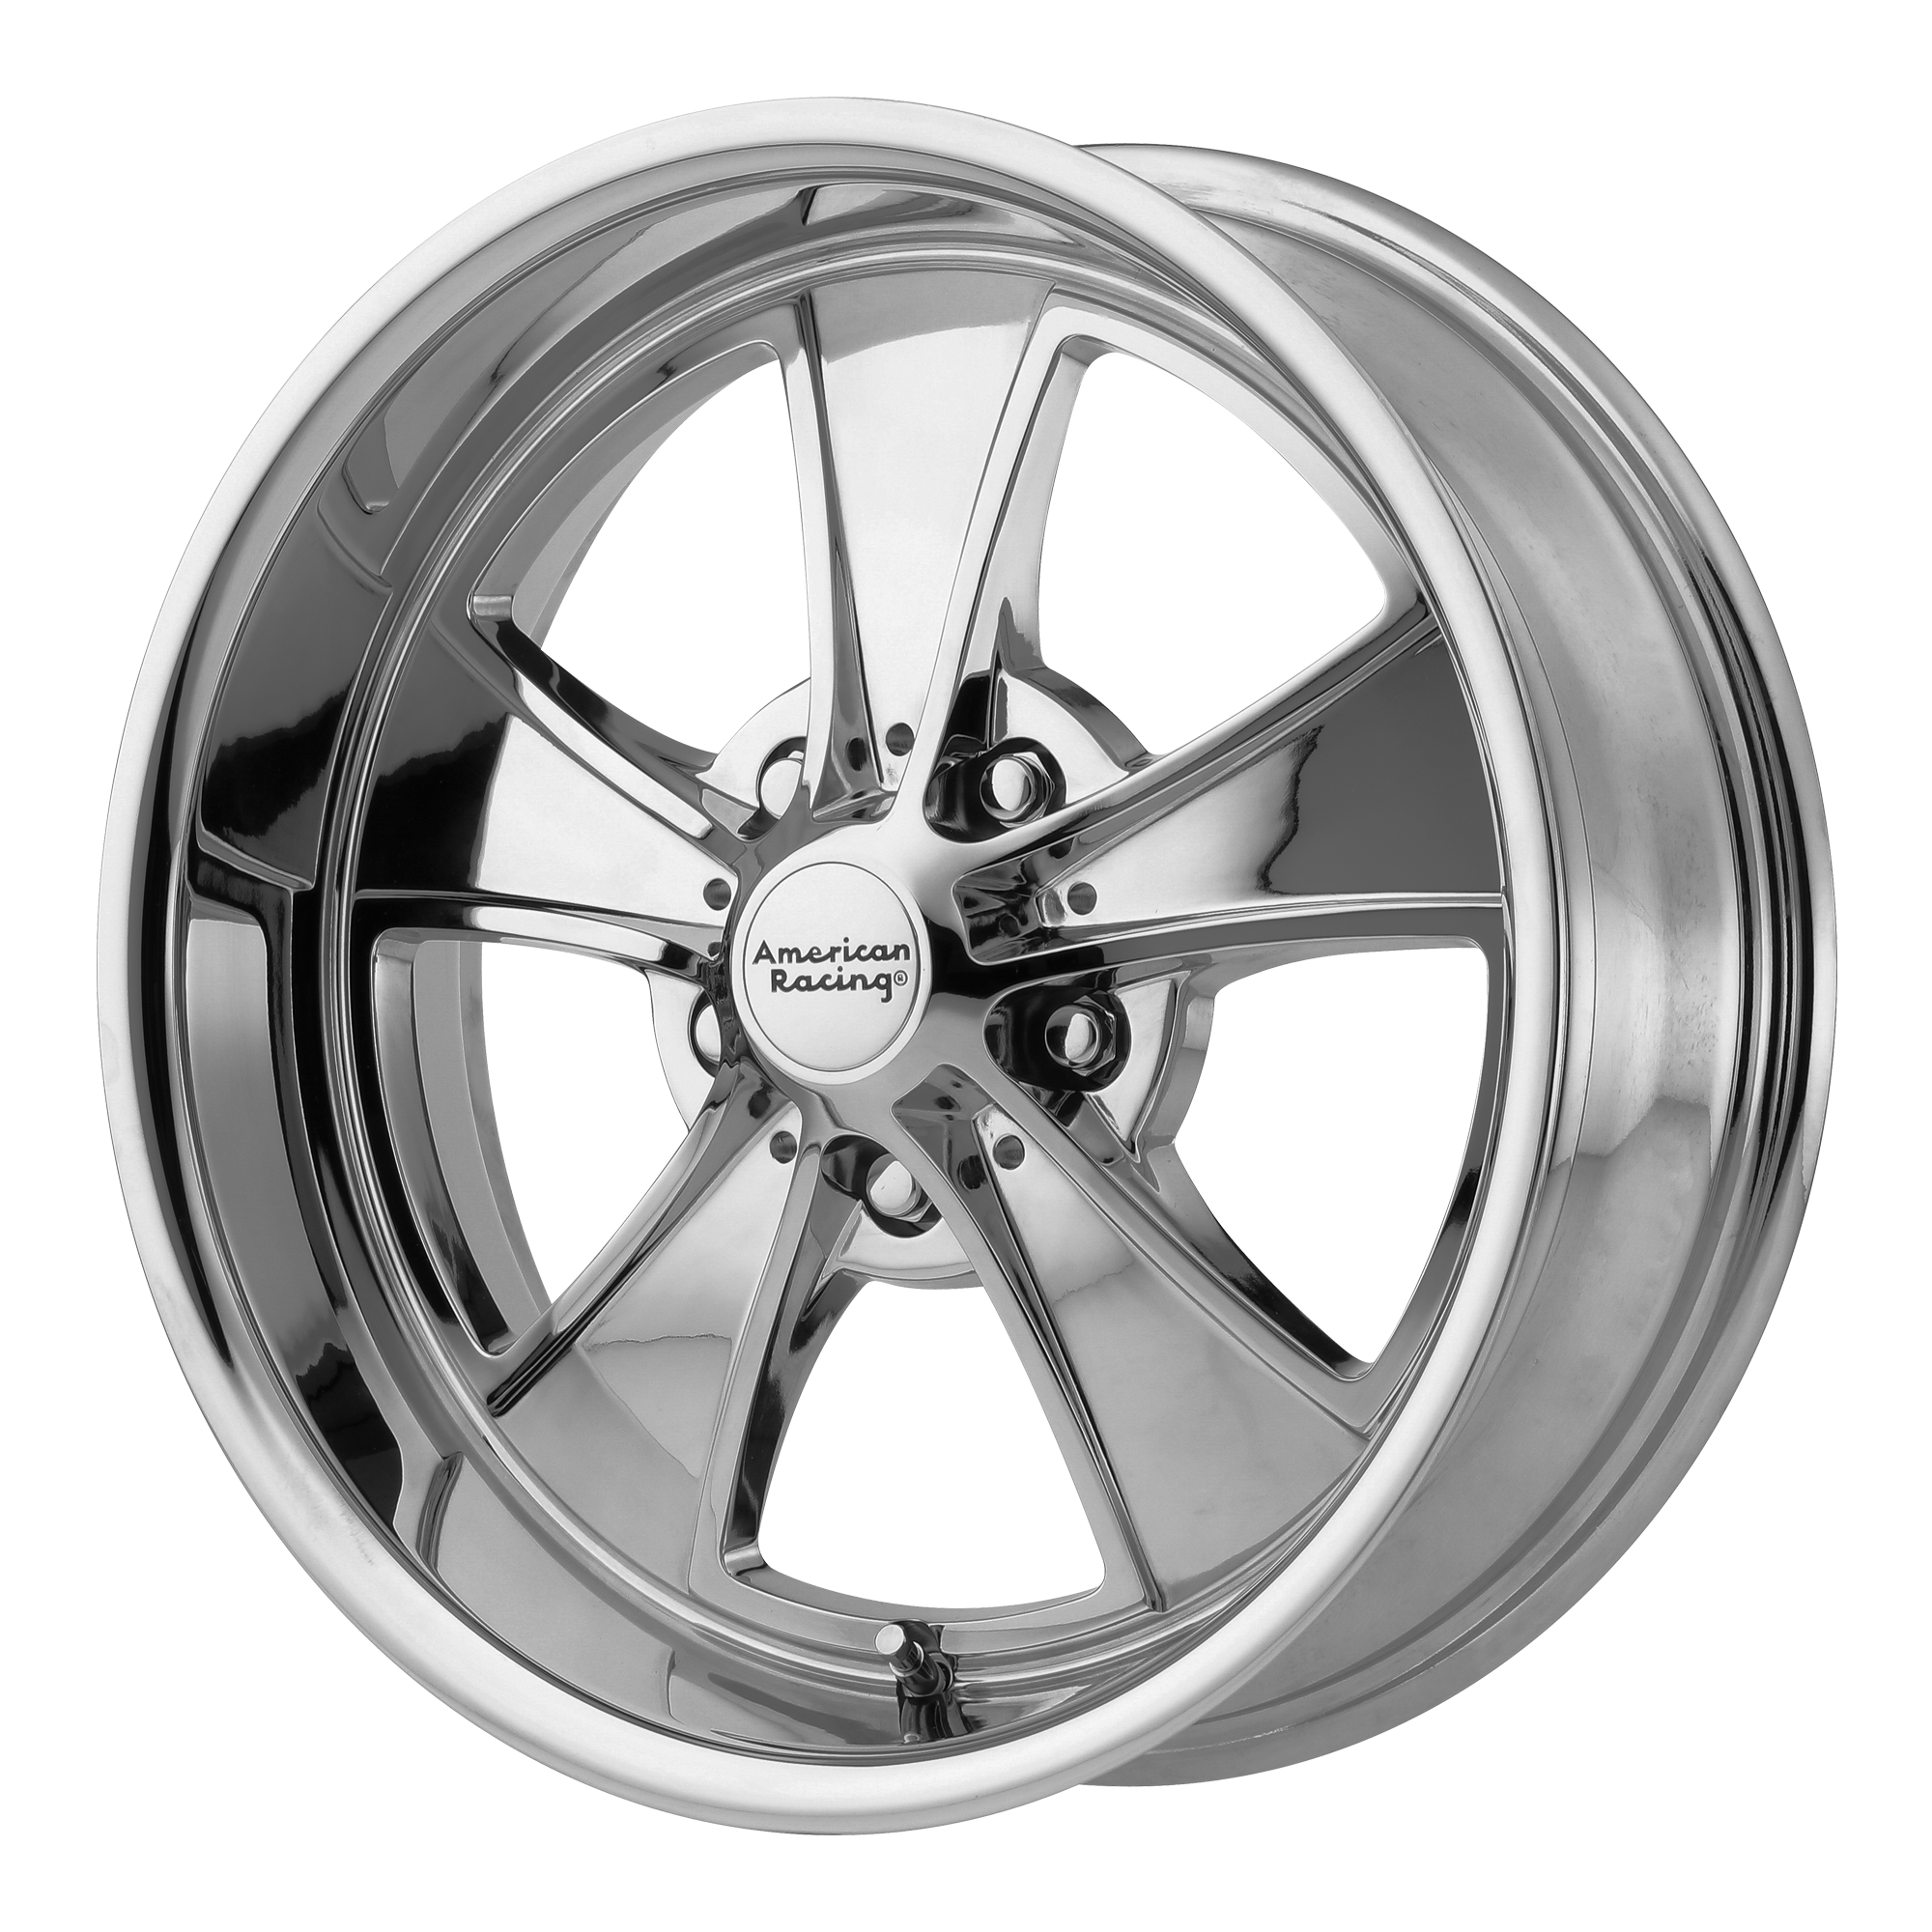 American Racing Wheels VN807 MACH 5 Chrome